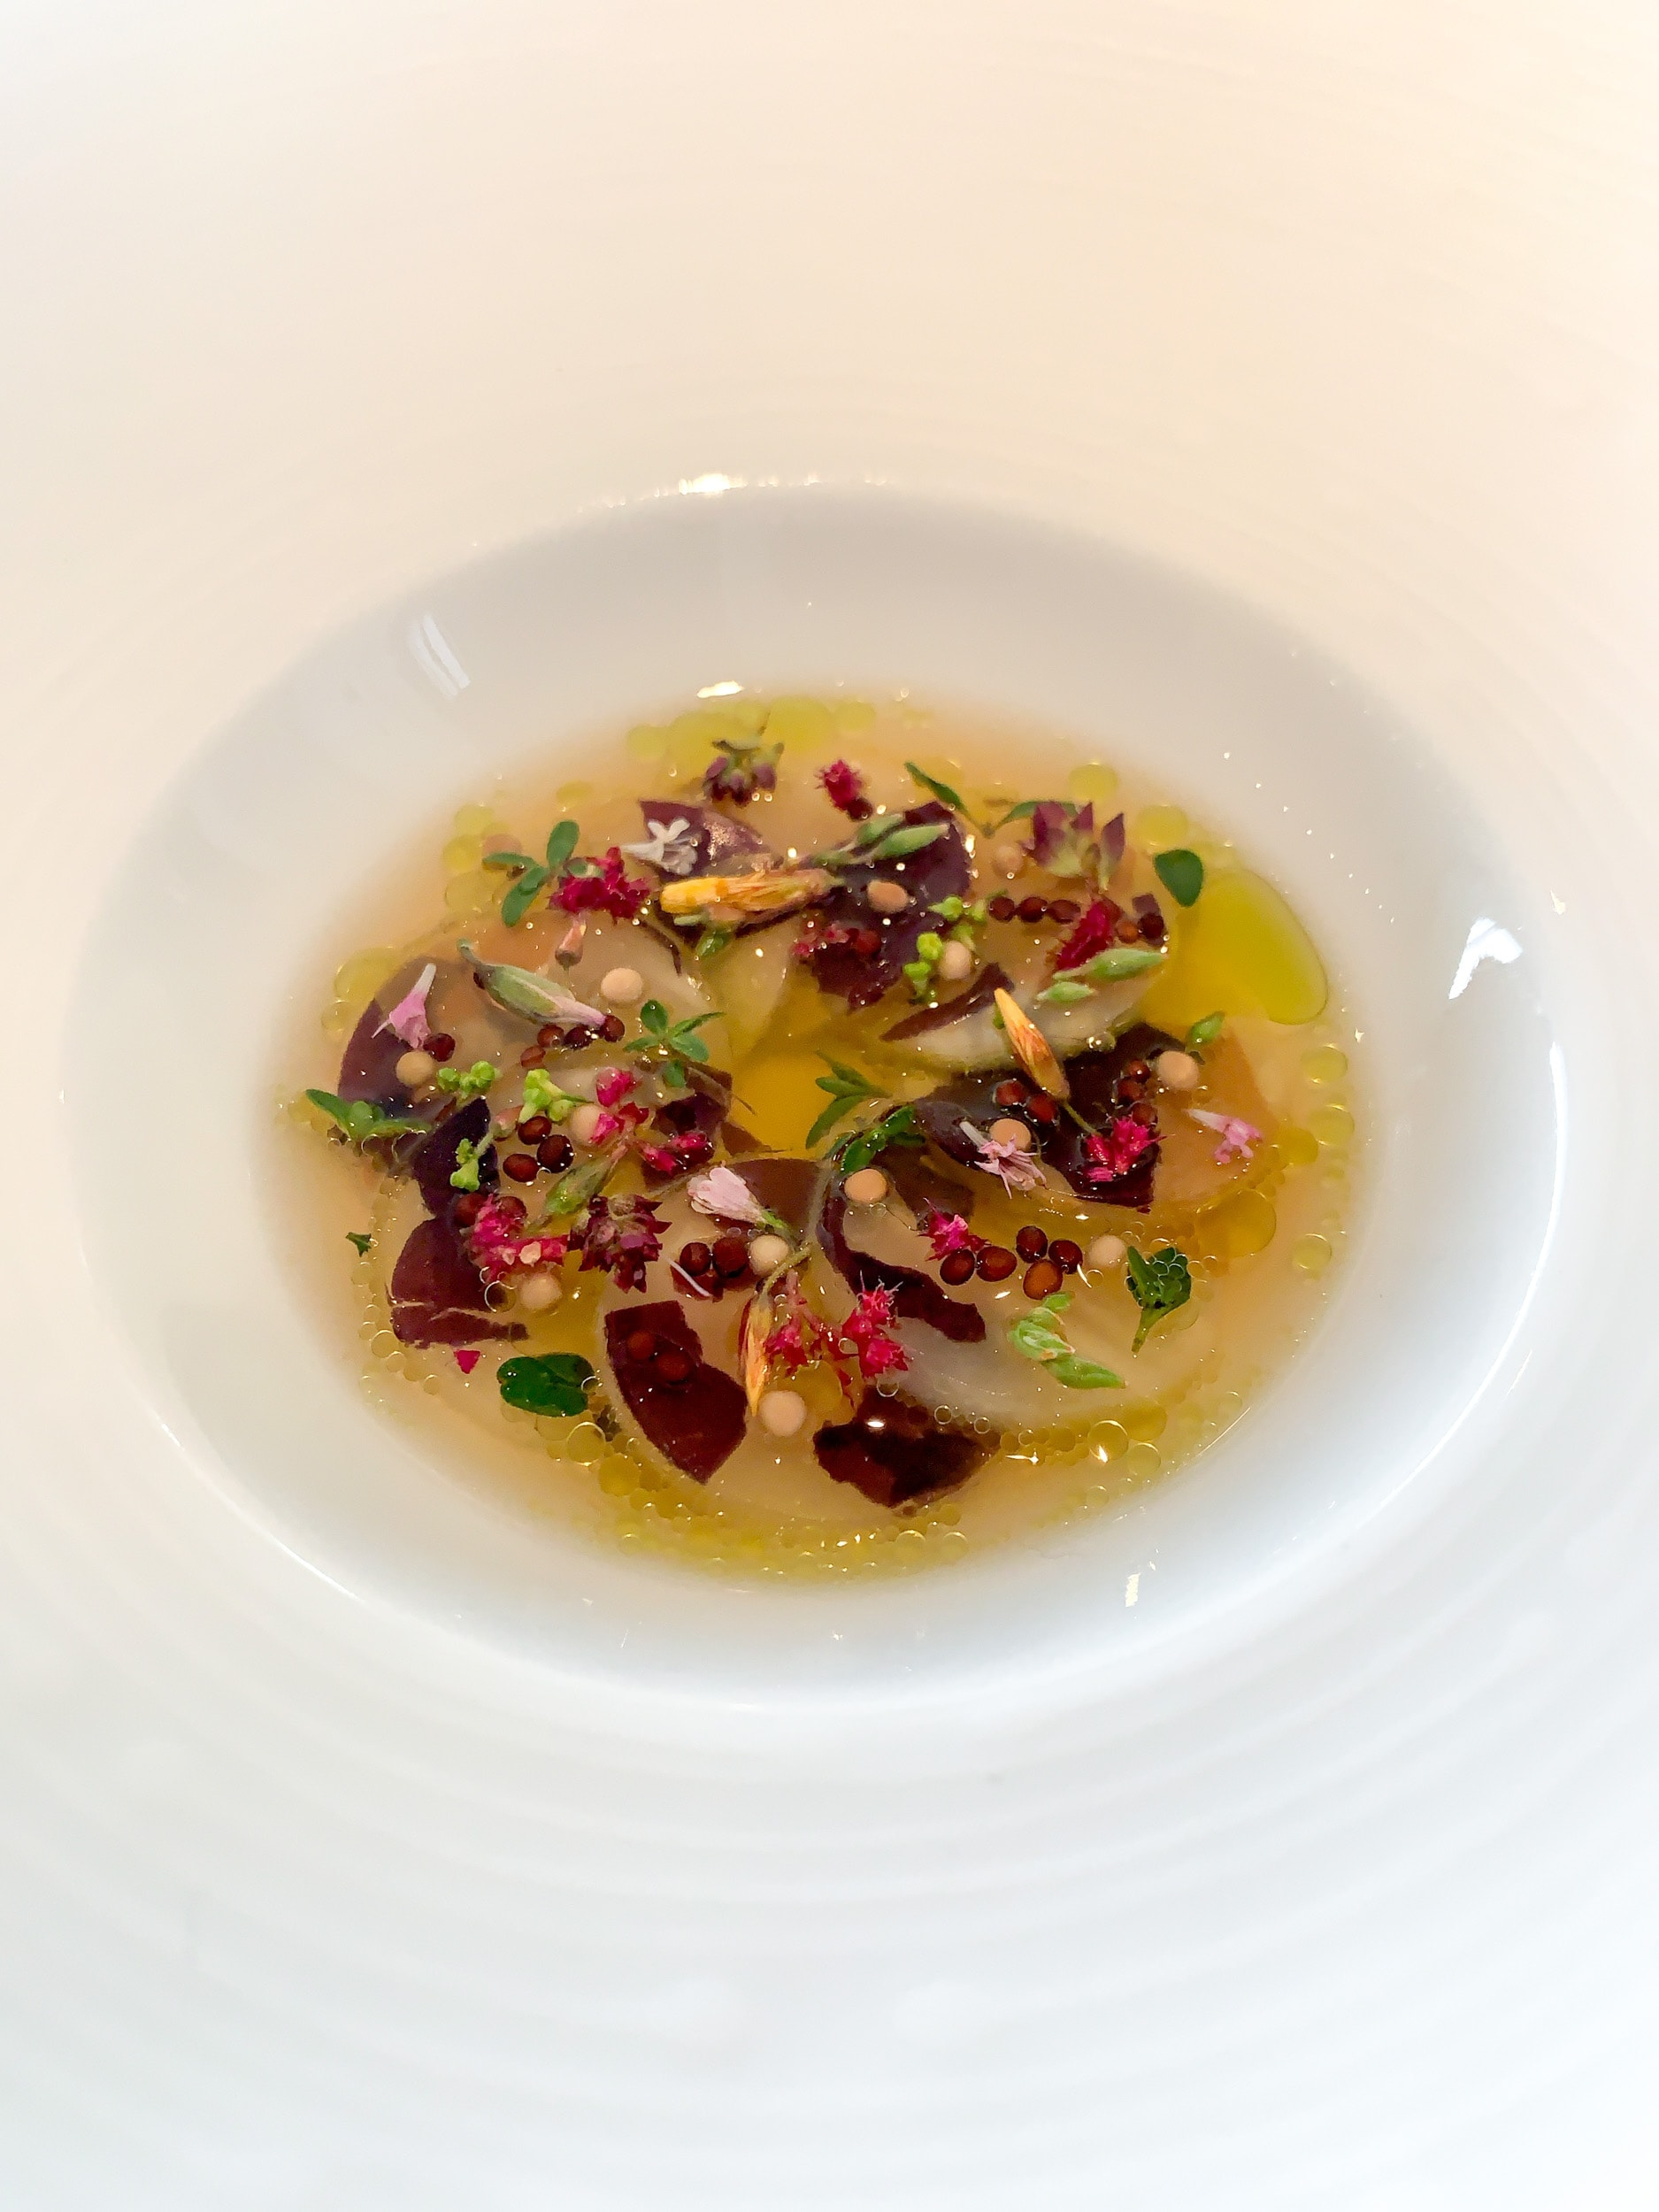 Pickled celeriac with sol, dried mussels, and aromatic seeds